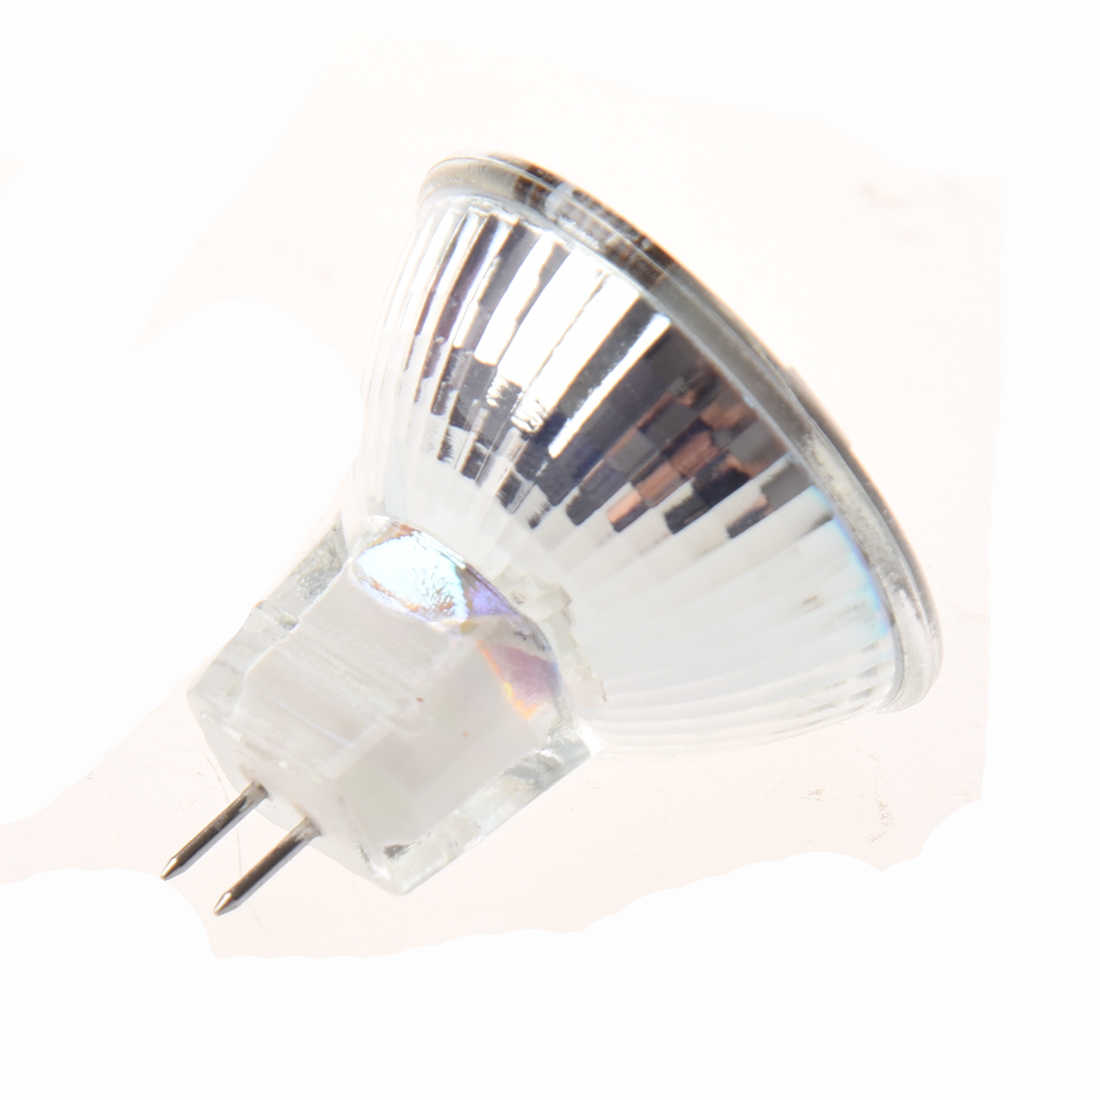 7W MR11 GU4 600LM LED Bulb Lamp 15 5630SMD Warm White Light